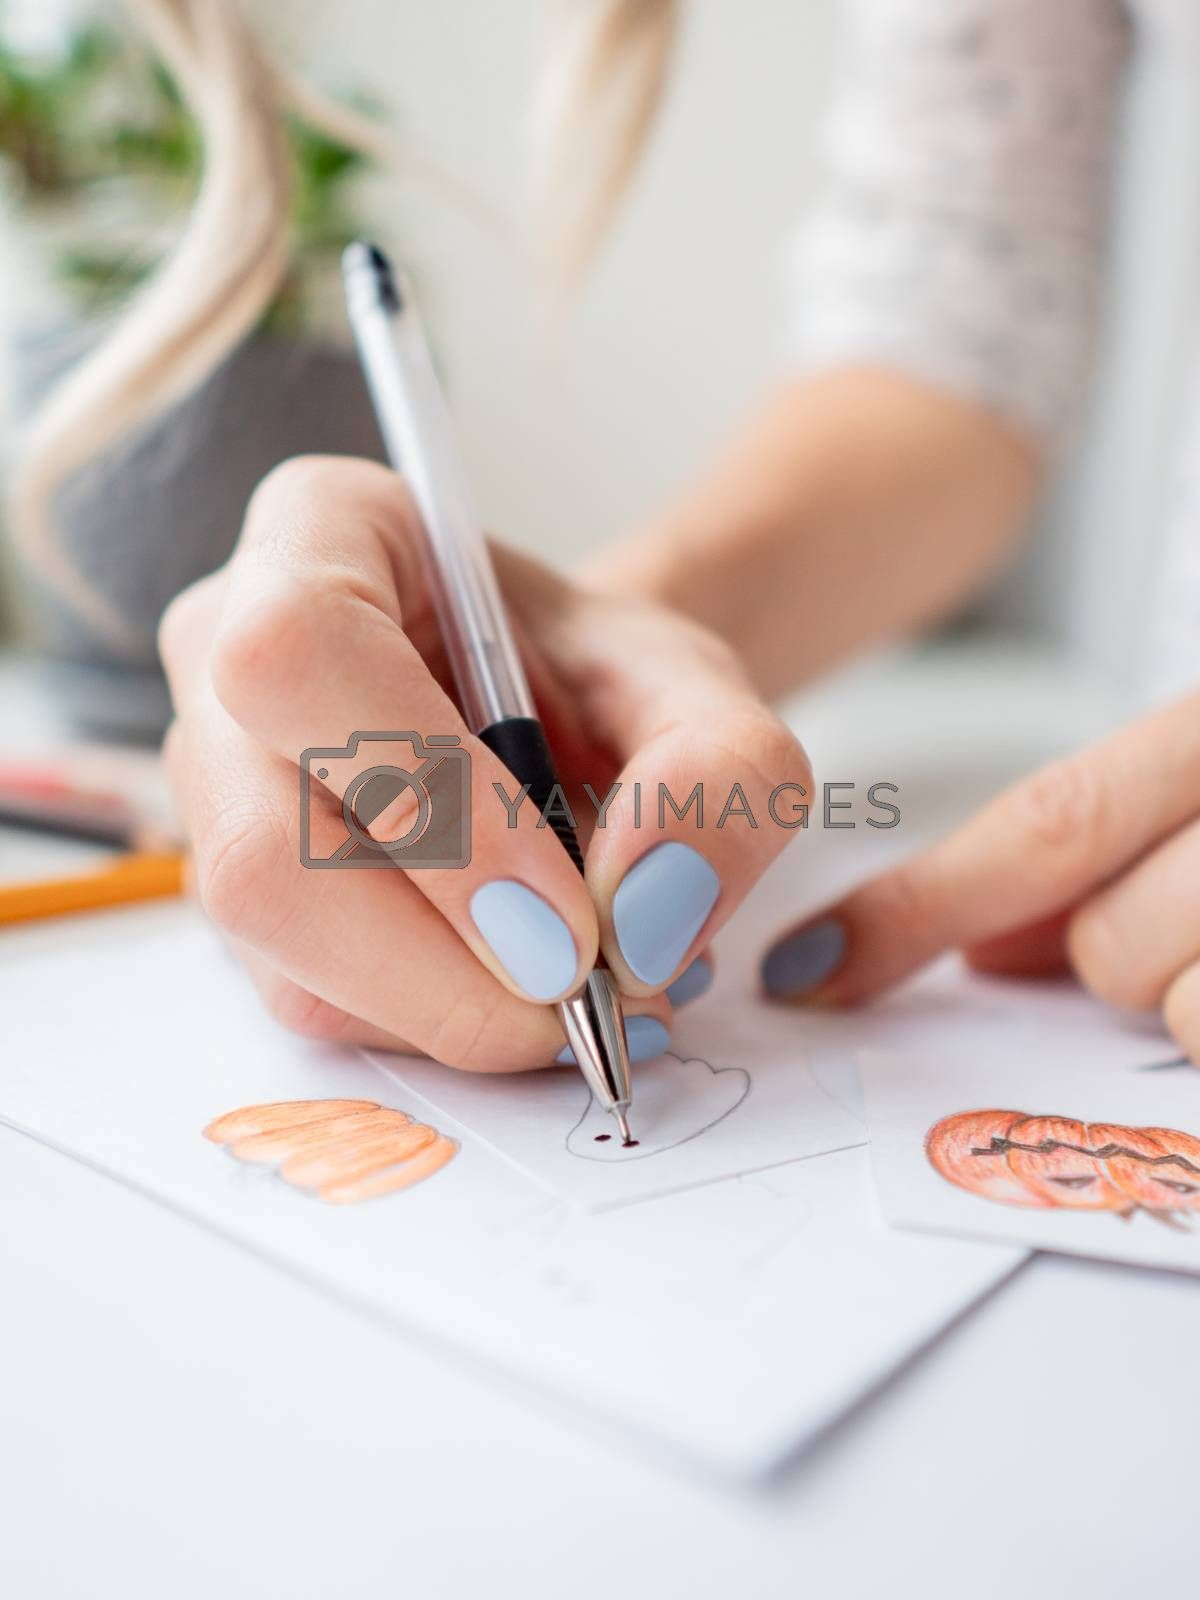 Woman with blue polish on nails draw ghosts and pumpkins. Handmade decorations for Halloween. DIY stickers on for flower pots. Socially-Distanced Halloween at home.